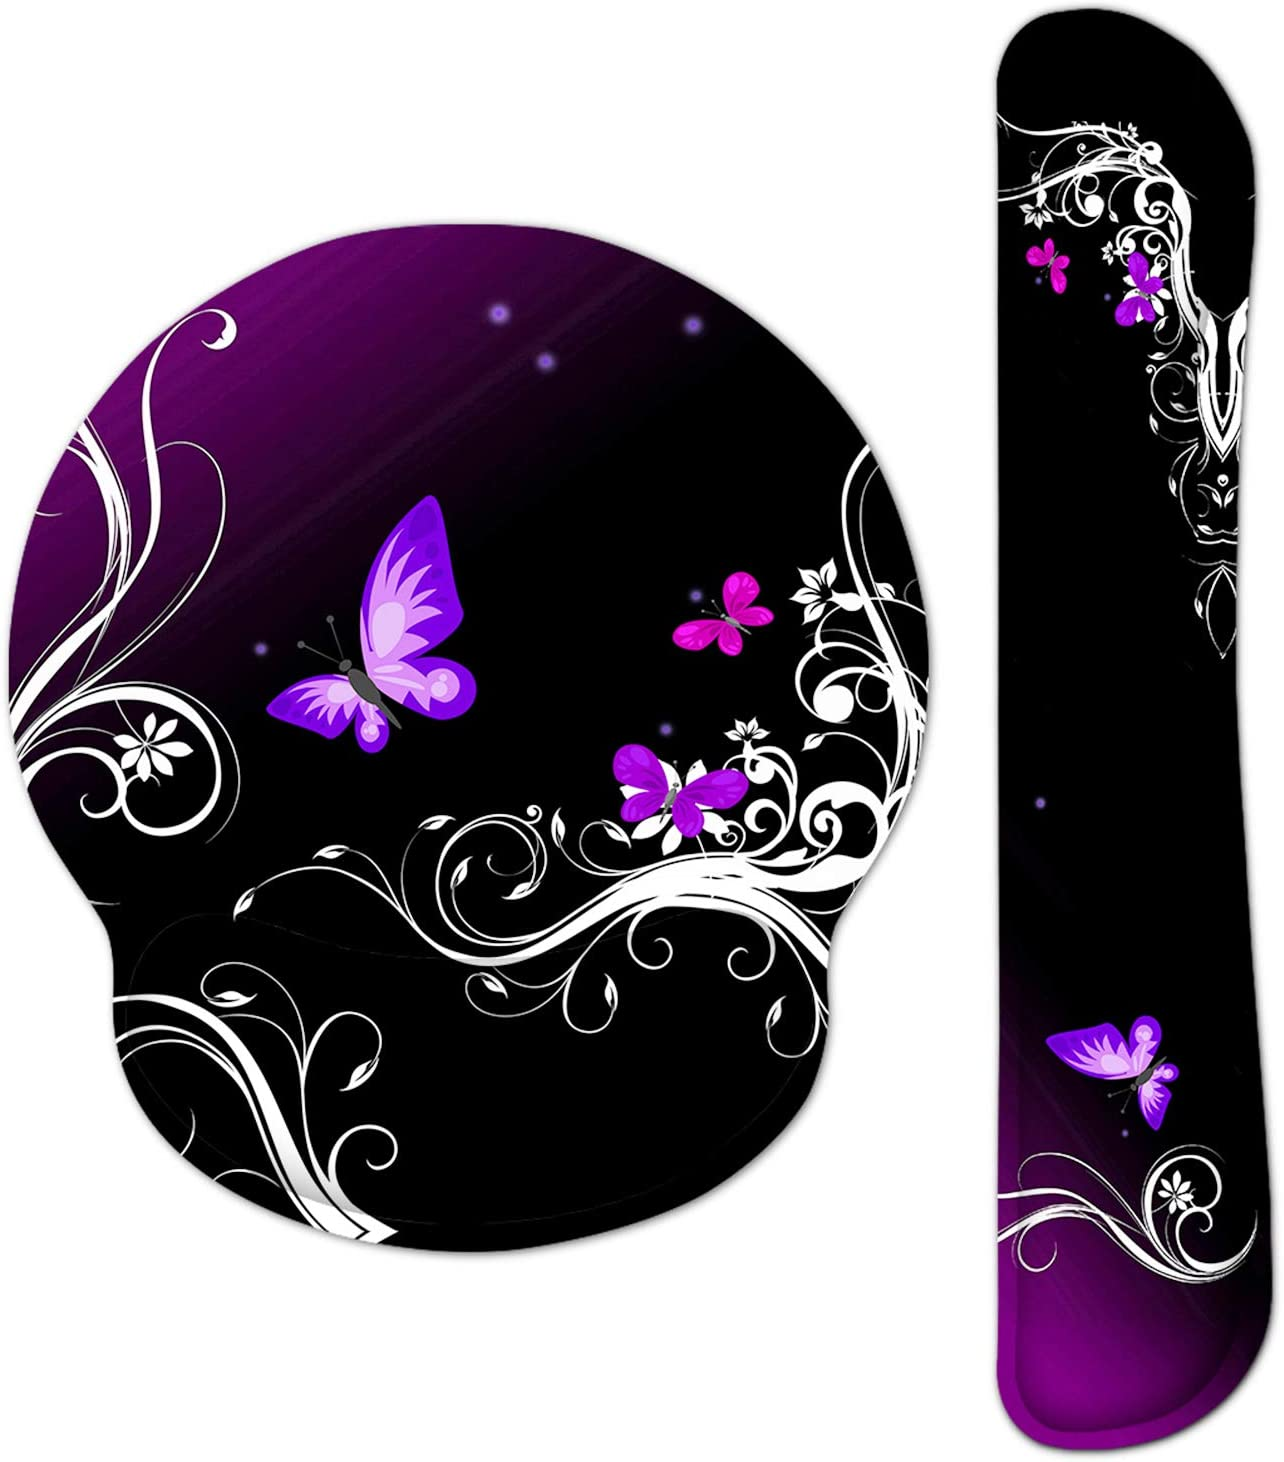 HAOCOO Ergonomic Keyboard Wrist Rest Pad and Mouse Pad Wrist Support Set with Non-Slip Backing Memory Form-Filled, Easy-Typing and Pain Relief for Gaming Office Computer Laptop(Purple Butterflies)